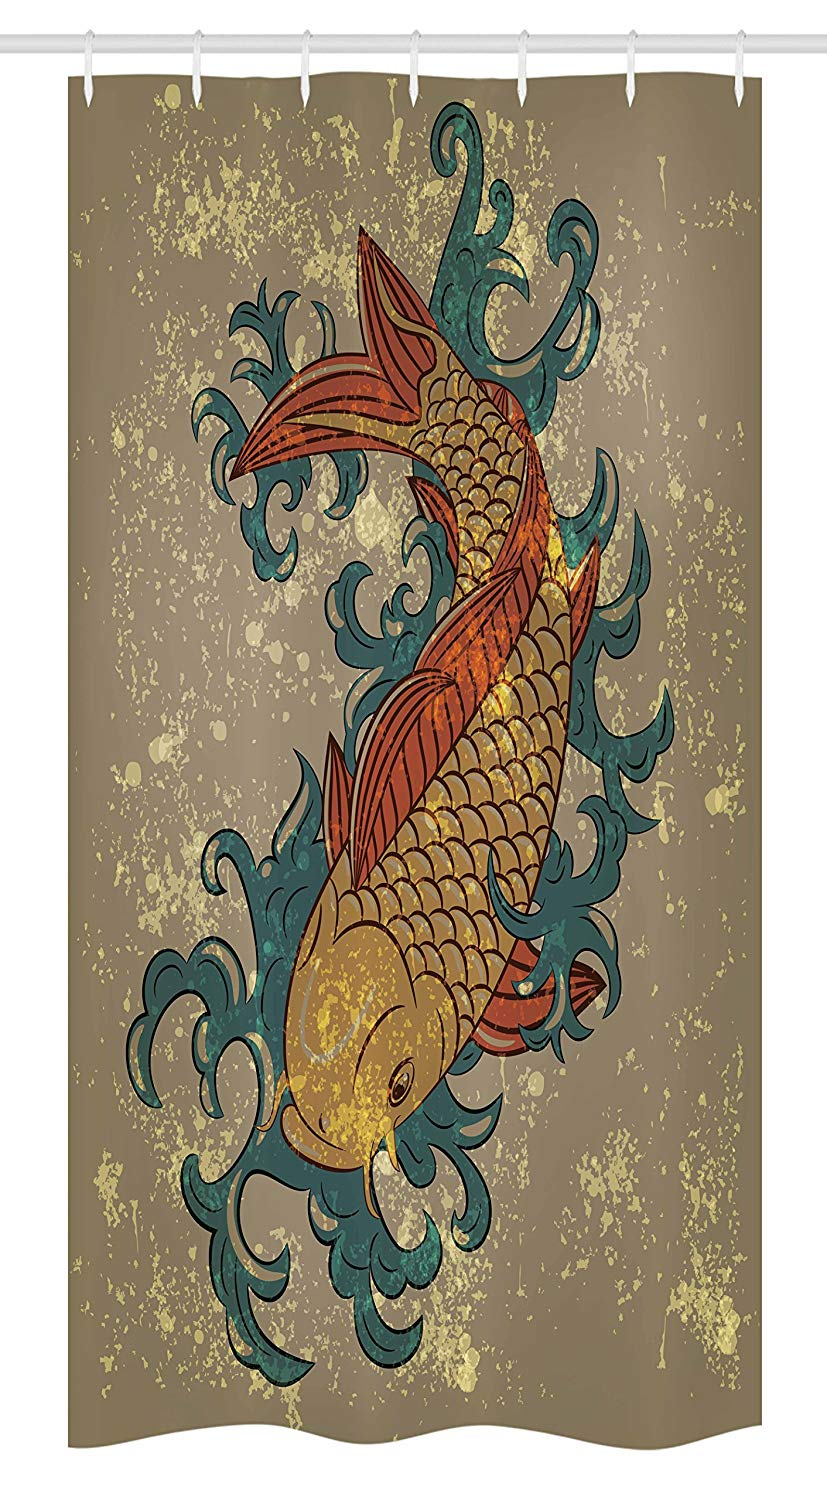 "Ambesonne Japanese Stall Shower Curtain, Grunge Style Oriental Water Koi Carp Fish Aquatic Theme Distressed Pattern, Fabric Bathroom Decor Set with Hooks, 36"" X 72"", Taupe Teal"